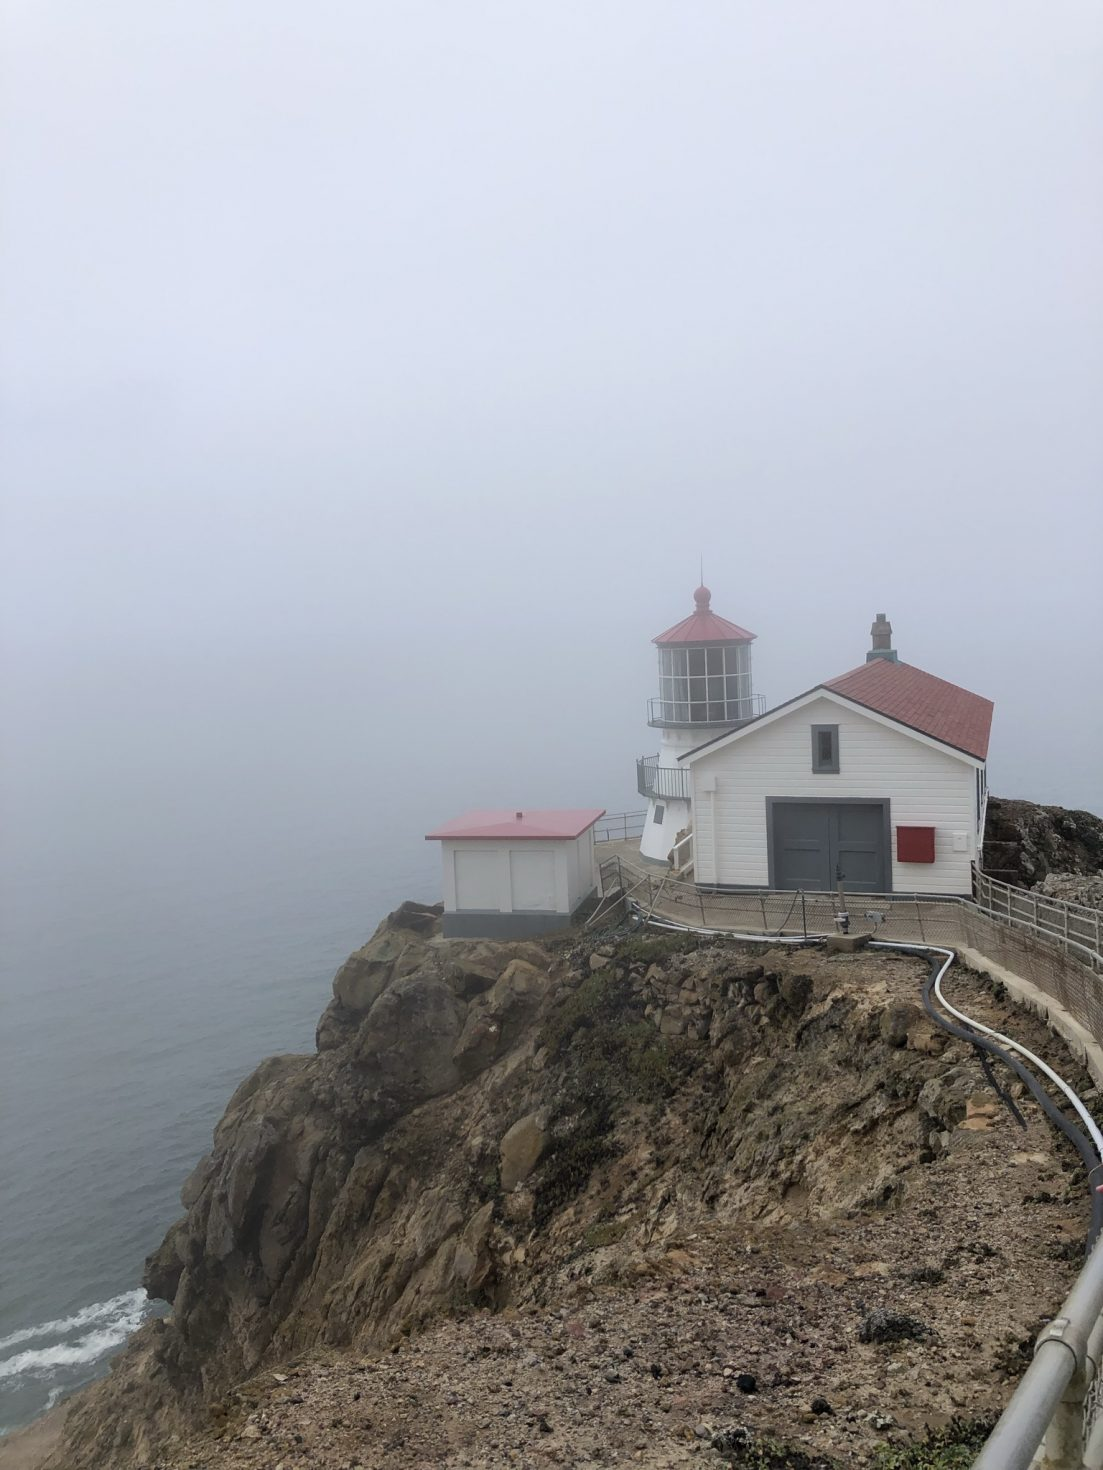 Rocky cliff in foreground, small lighthouse and neighboring white structures with red roofs in midground, and fog visible in background.